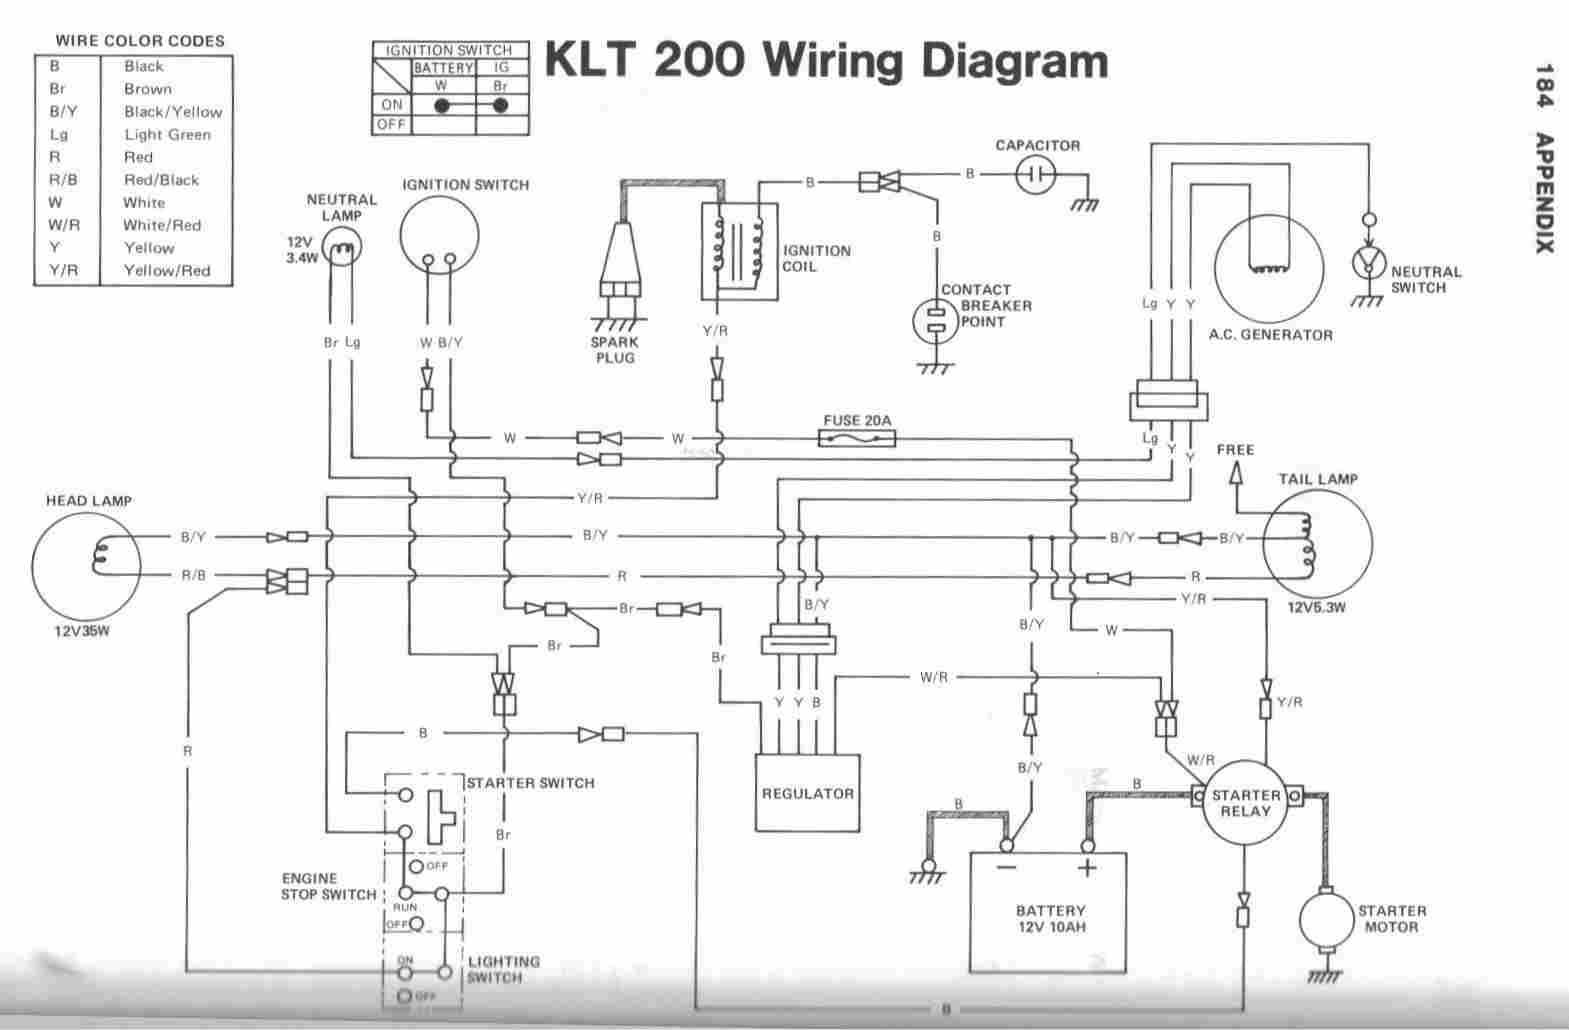 Car Electrical Wiring Diagram Pdf : Residential electrical wiring diagrams pdf easy routing